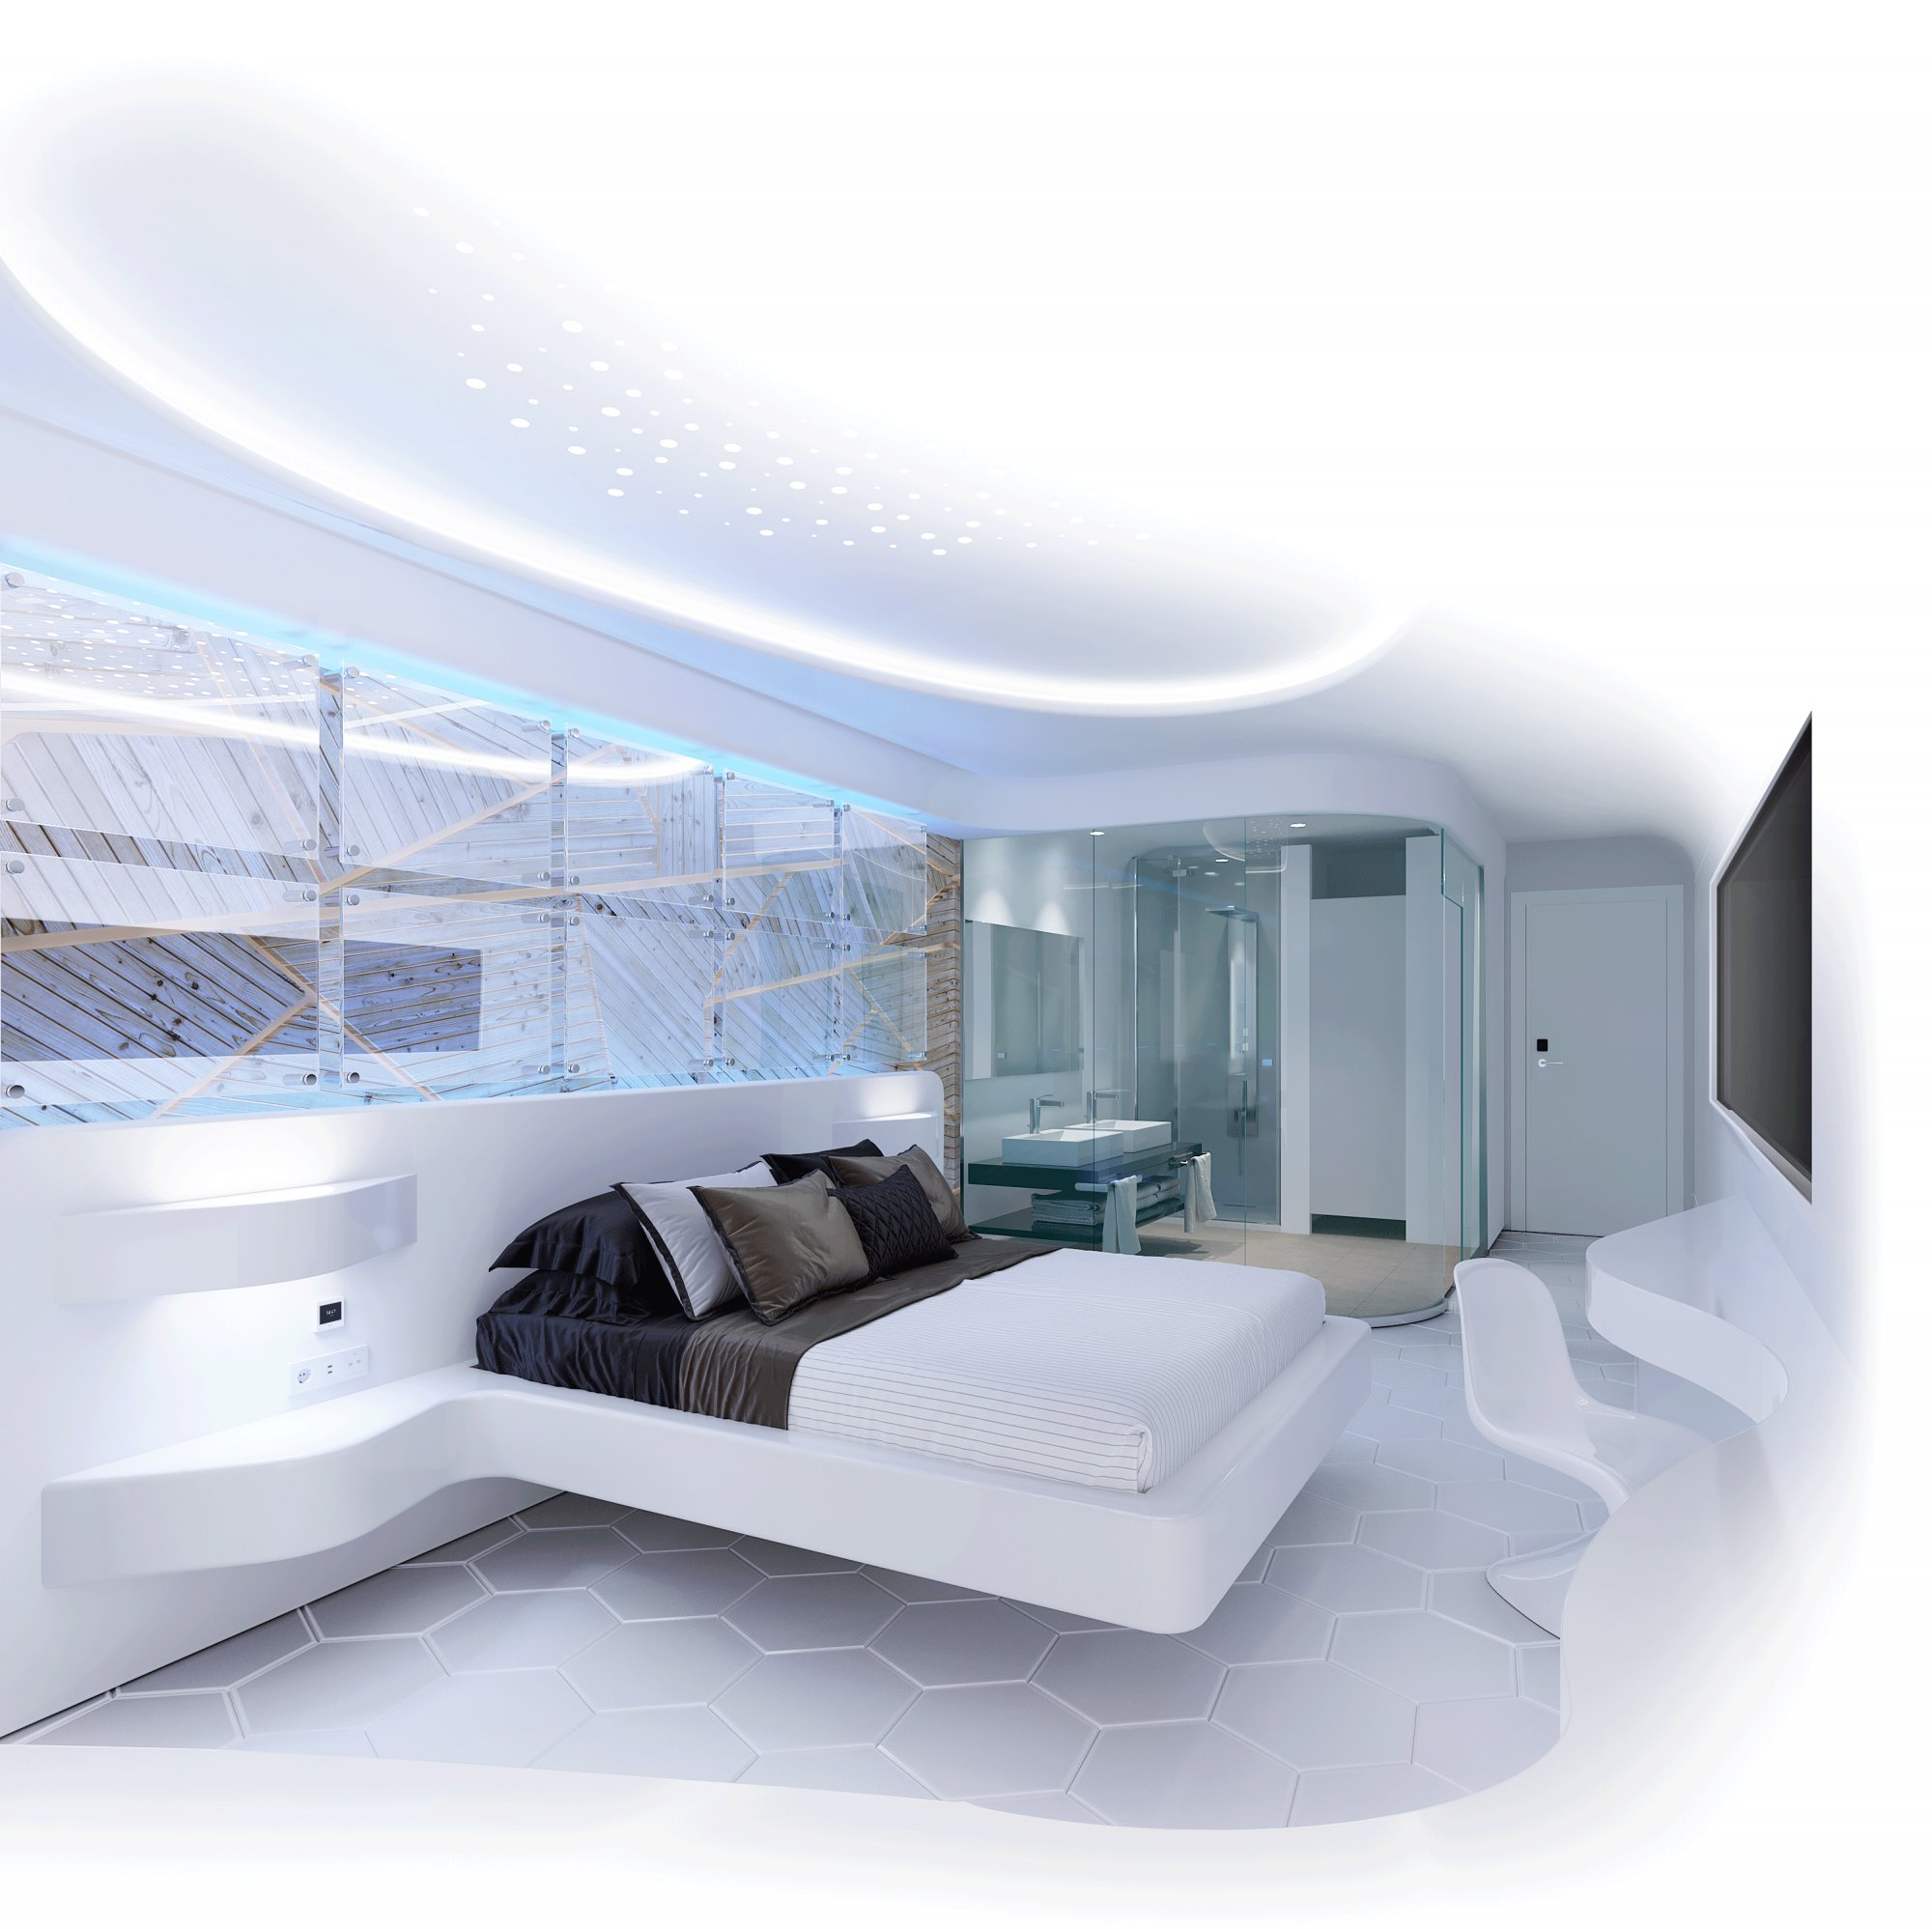 Futuristic and bright hotel room with installation of Zennio products